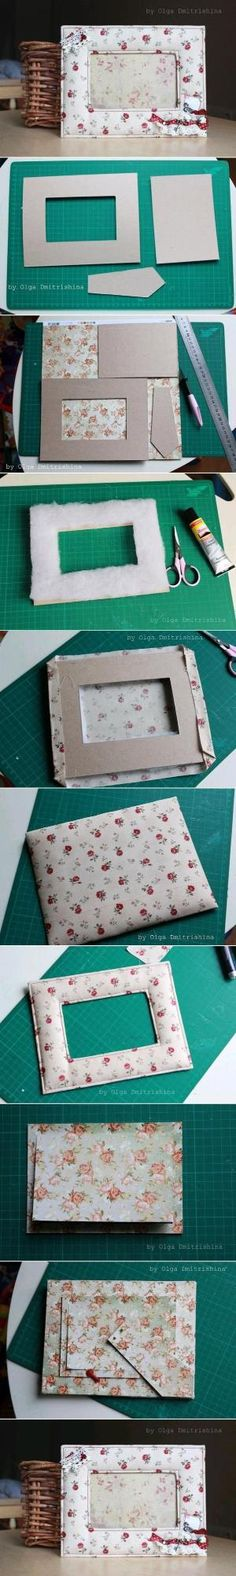 DIY Soft Picture Frame by Velizhankina